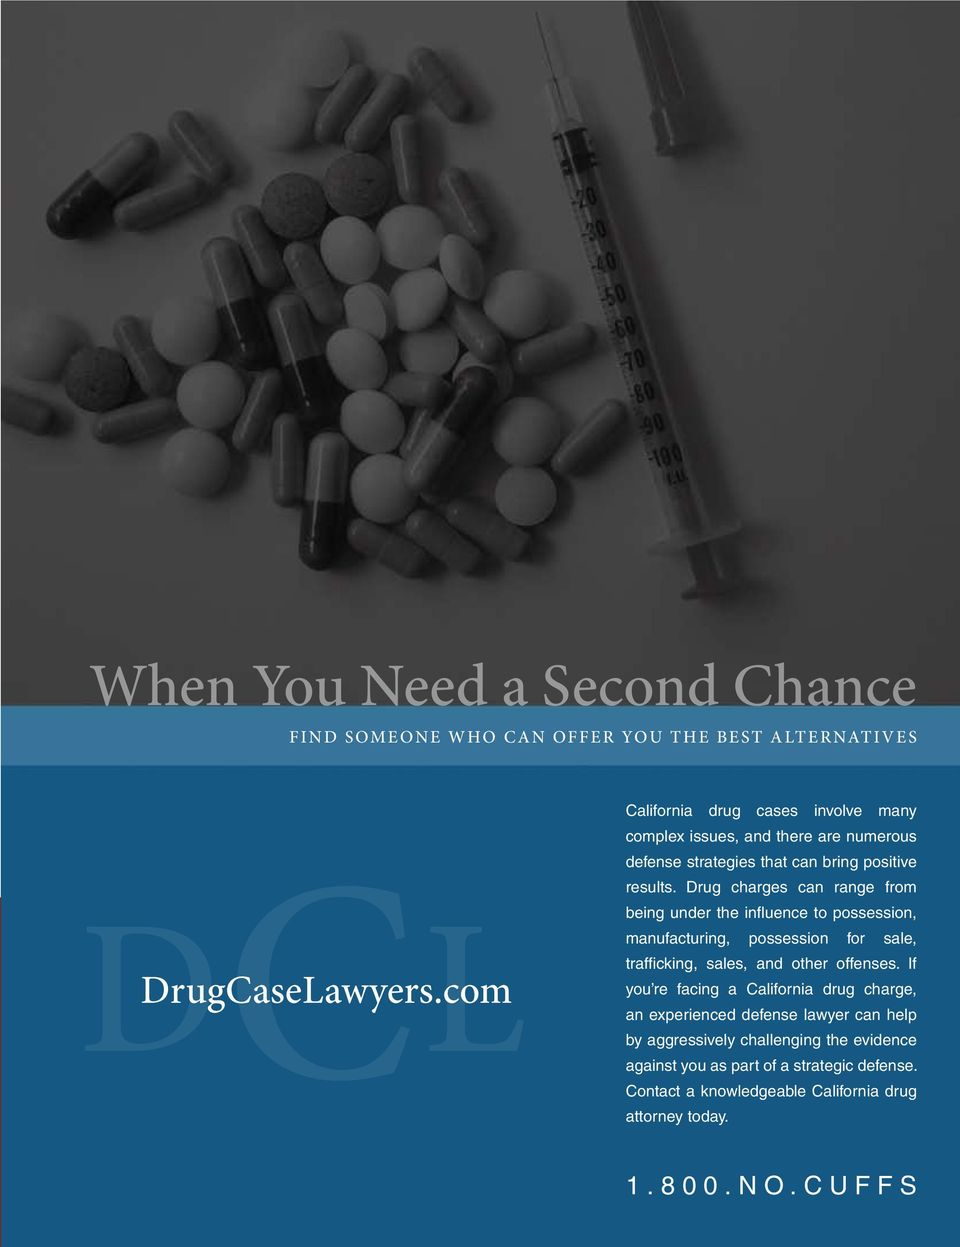 Drug charges can range from being under the influence to possession, manufacturing, possession for sale, trafficking, sales, and other offenses.